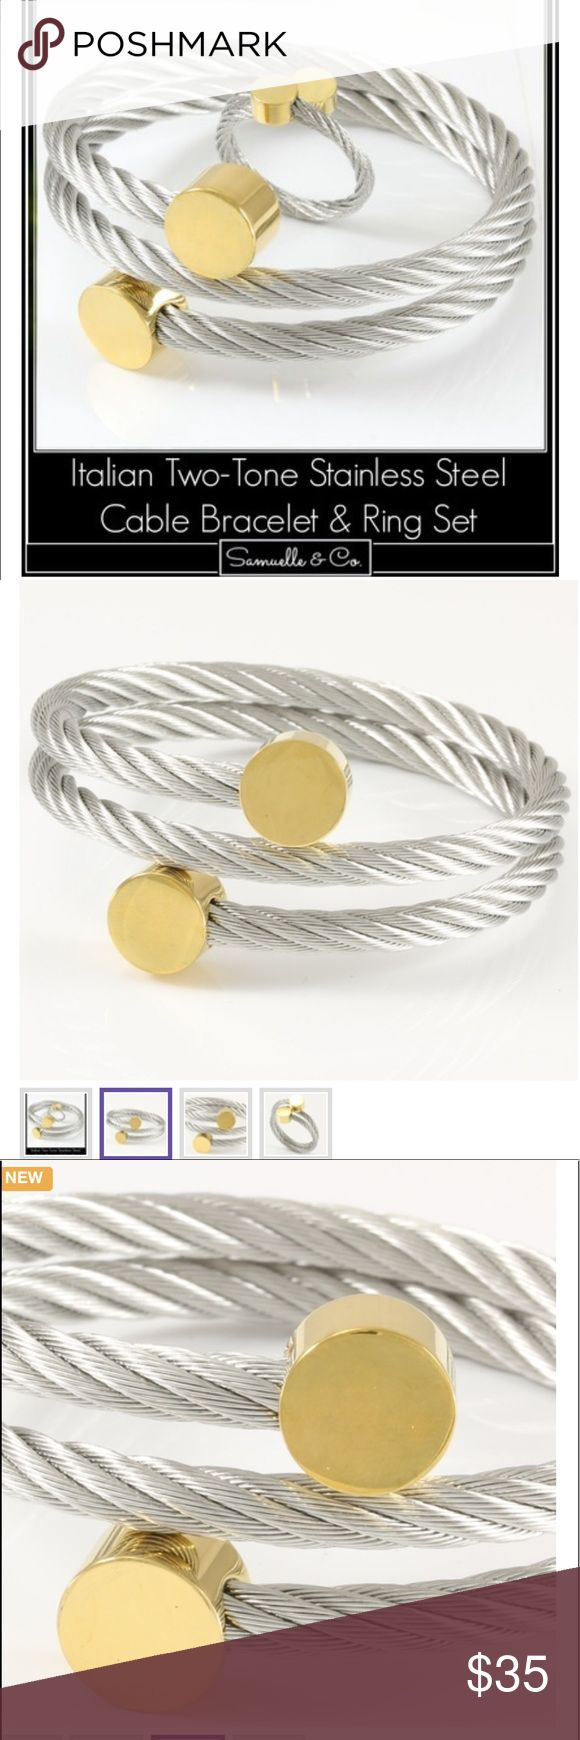 Italian Two-Tone Stainless Steel Cable Set Material: Stainless steel Color: Multi Condition: New  Italian Two-Tone Stainless Steel Cable Bracelet & Ring.  Total weight for the Set is 51.2 Grams.  The Bracelet is Adjustable for All sizes.  Ring Size: Adjustable for All ring sizes.  This Bracelet is Sure to Turn Heads and get you Tons of Compliments. Photos just don't do in Justice. Samuelle & Co Jewelry Bracelets